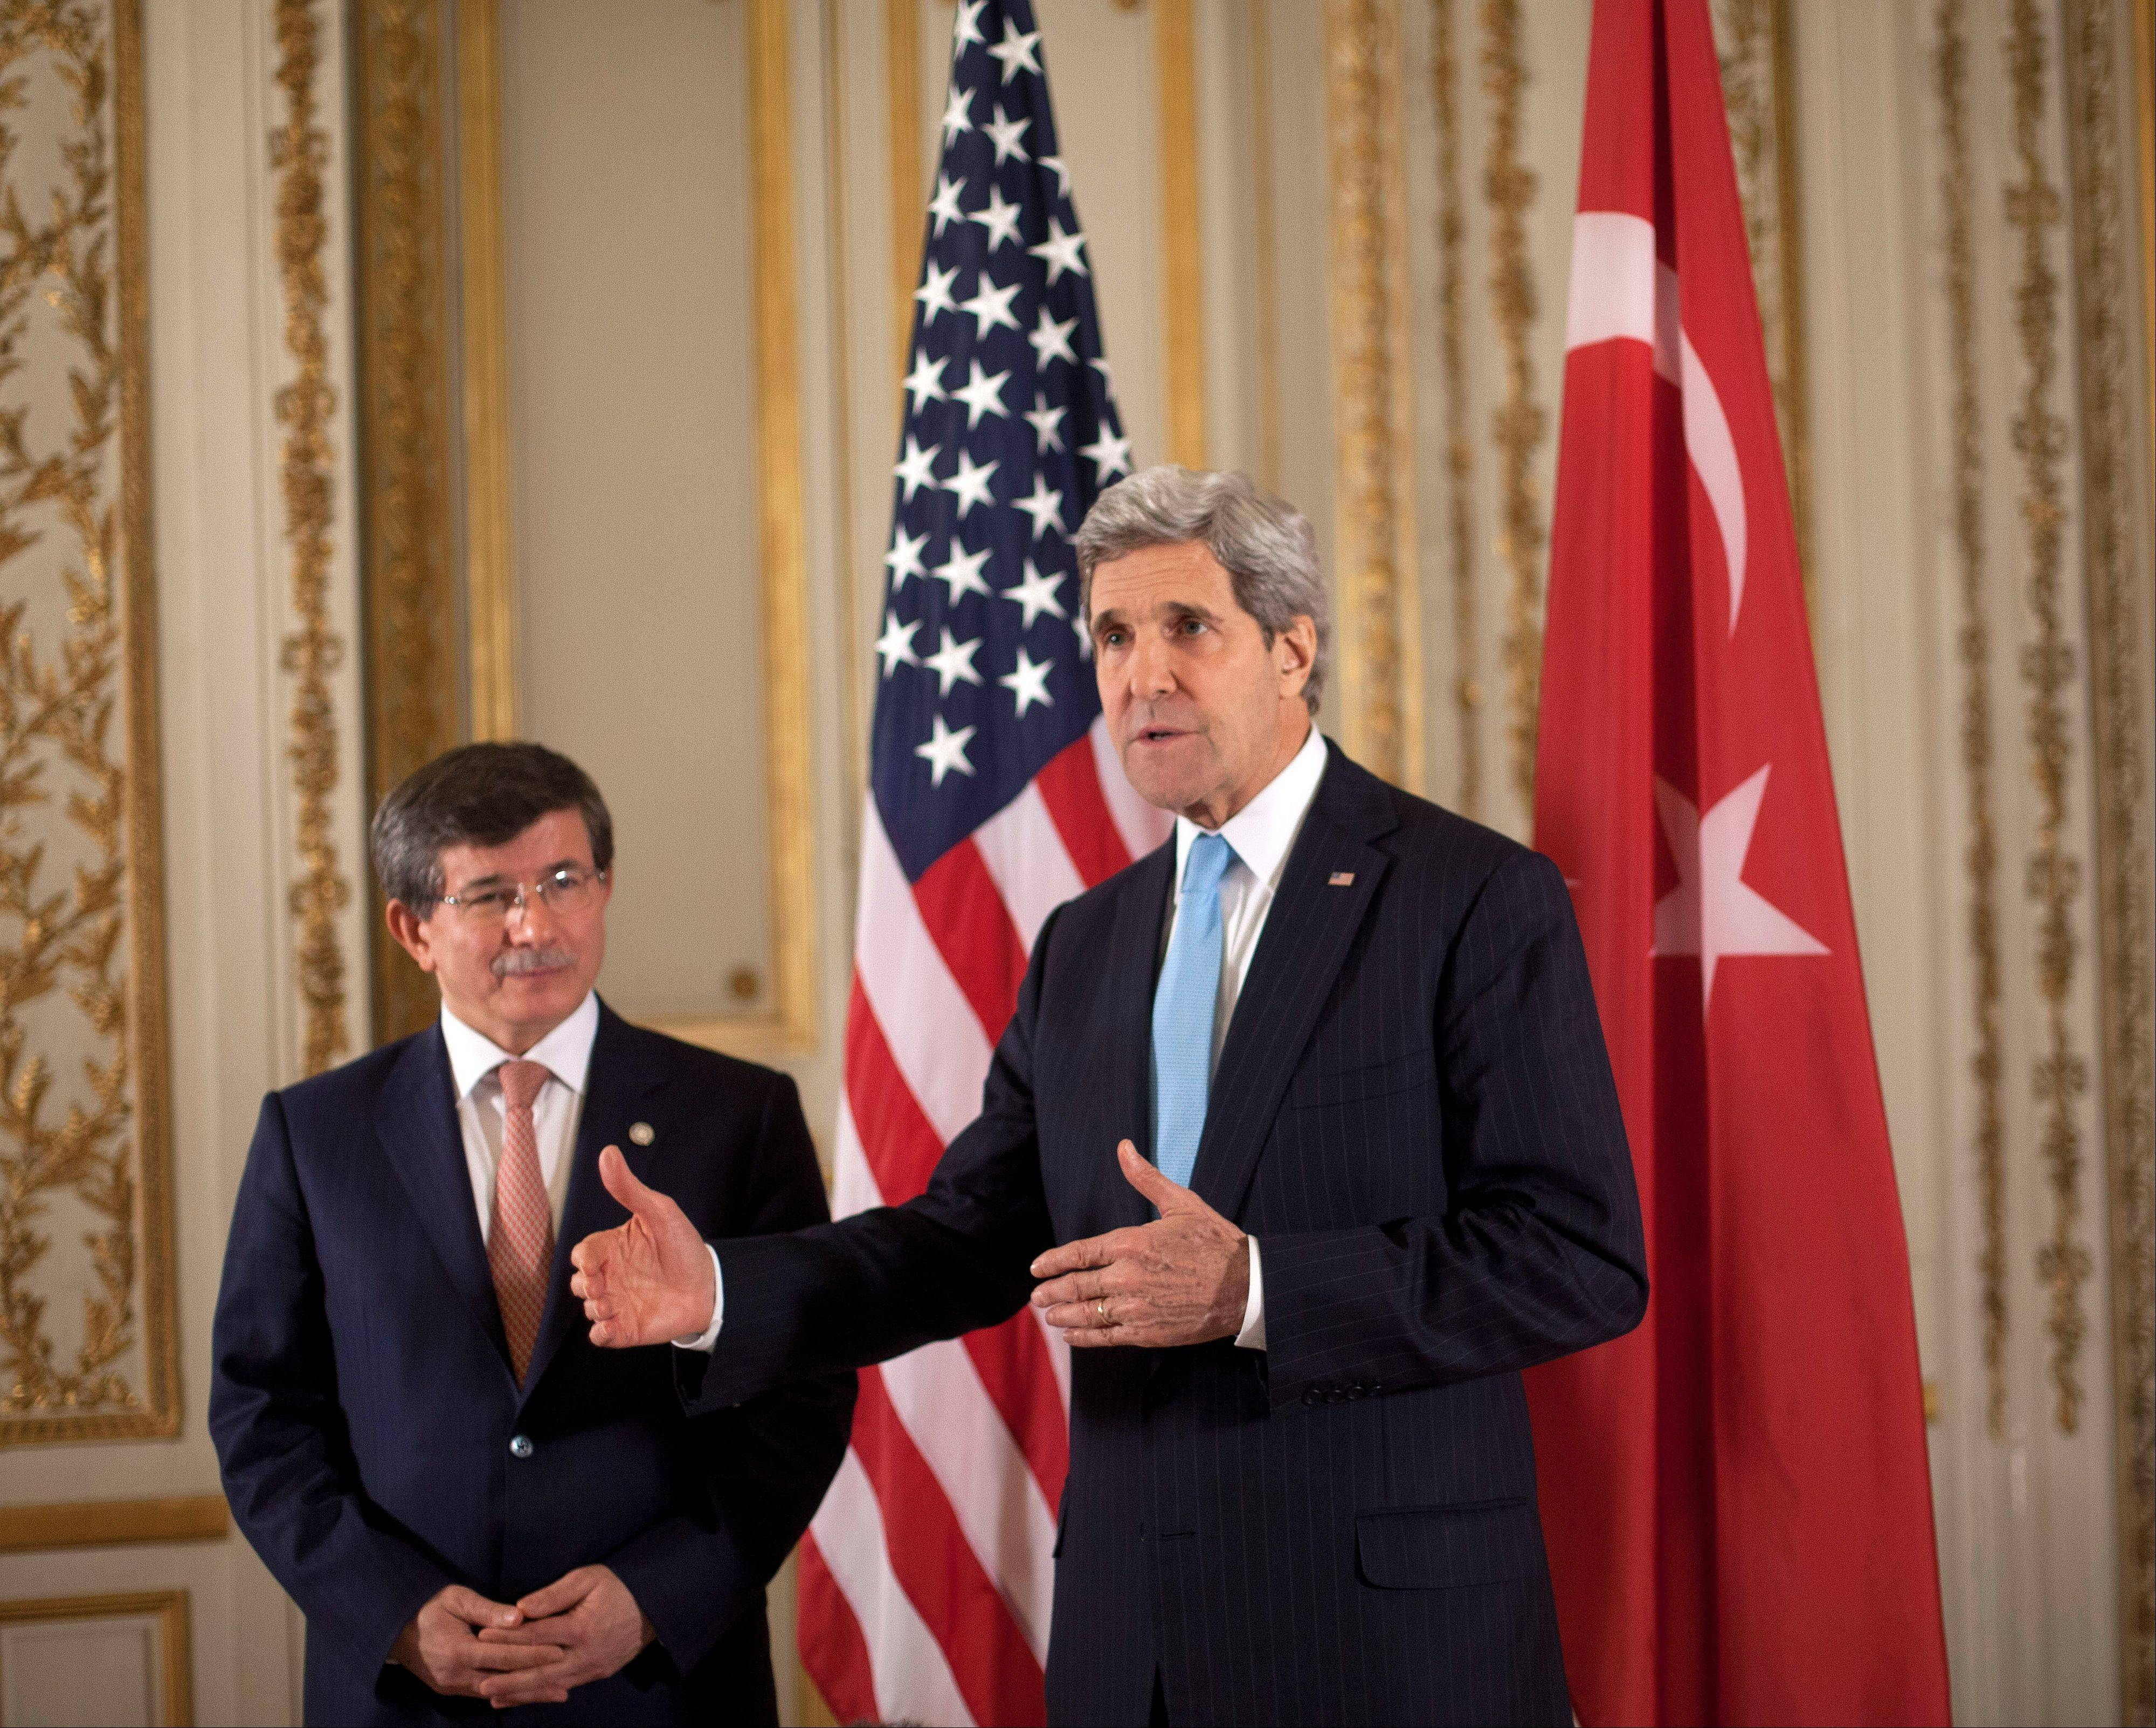 U.S. Secretary of State John Kerry, right, with Turkish Foreign Minister Ahmet Davutoglu, is in Paris for a two-day meeting to rally international support for ending the three-year civil war in Syria.